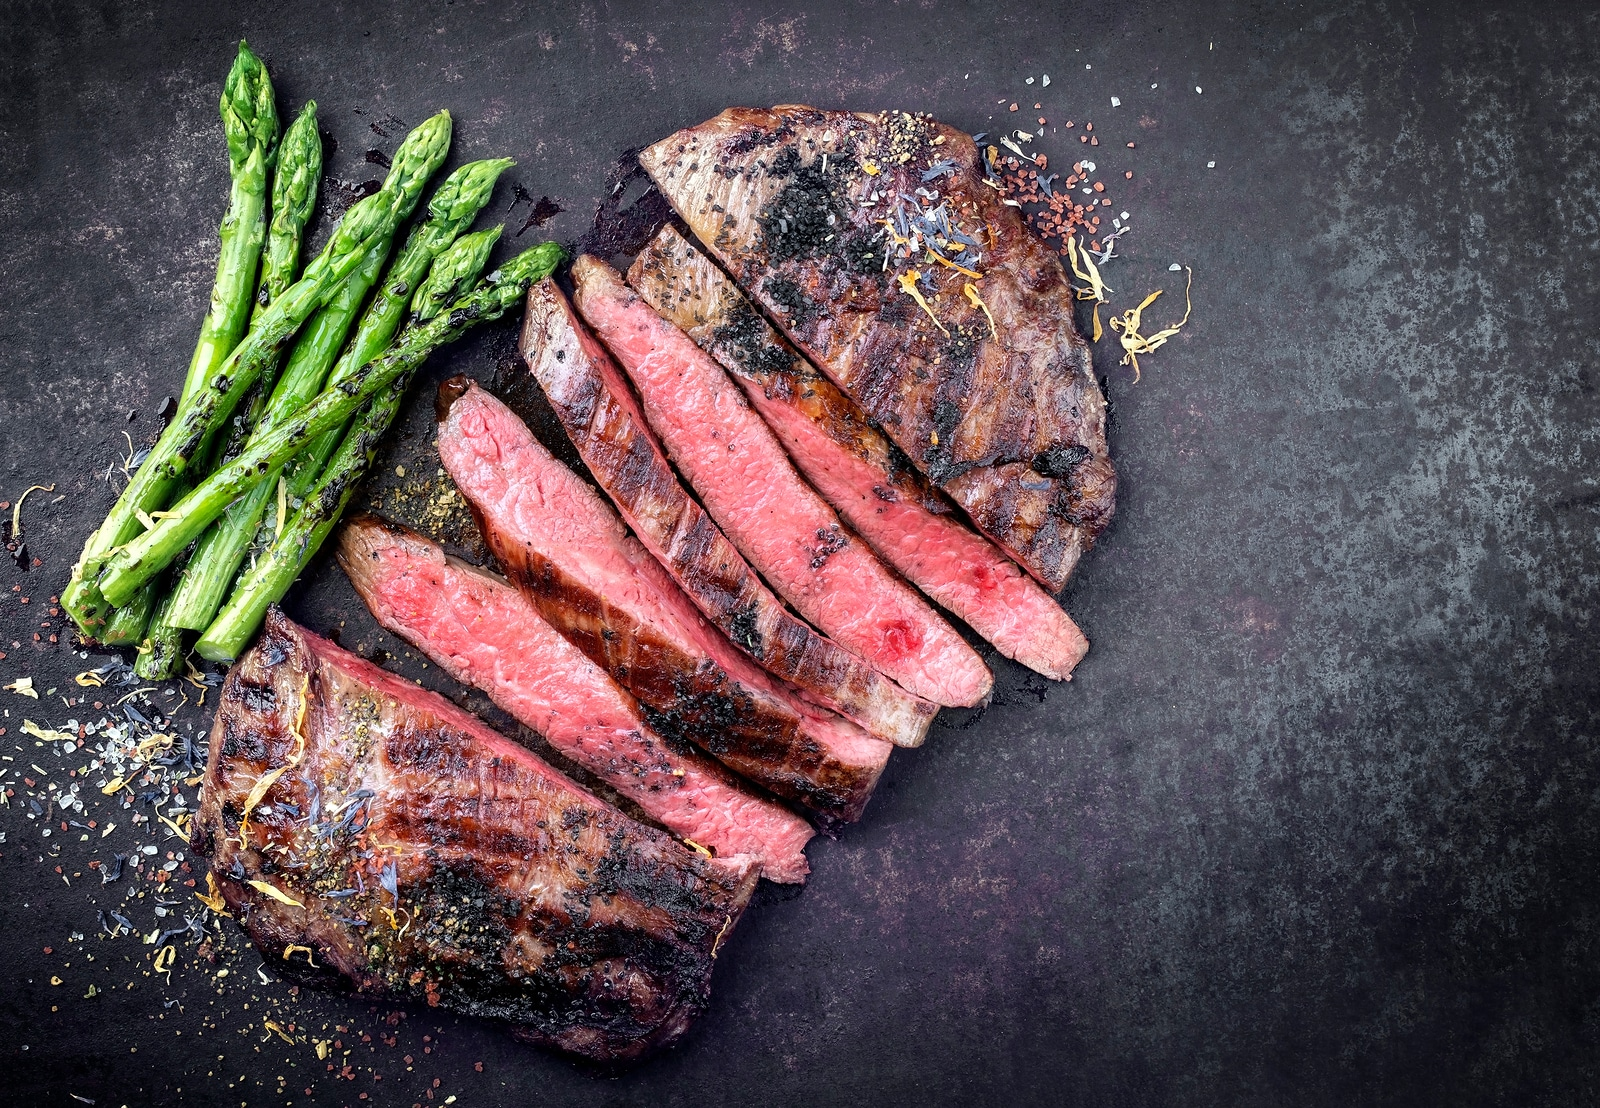 Barbecue dry aged wagyu flank steak sliced with green asparagus